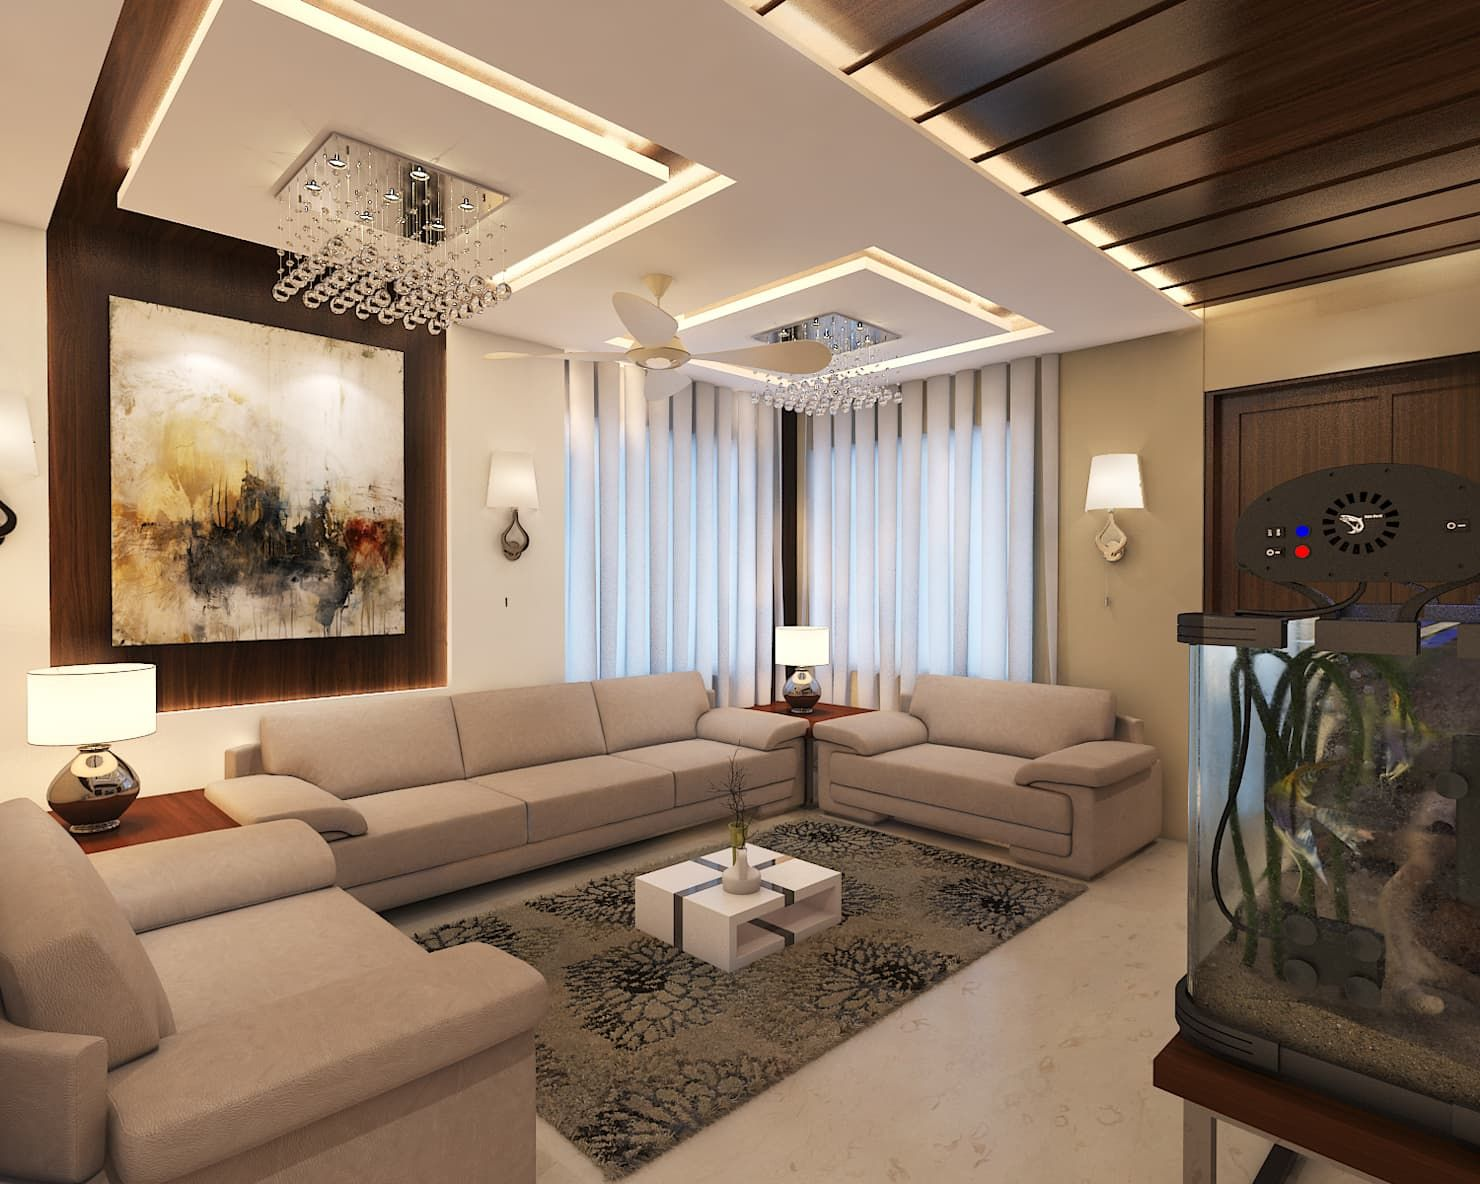 Drawing Room Modern By Arch Point Modern Homify In 2020 Ceiling Design Living Room Hall Interior Design Ceiling Design Bedroom